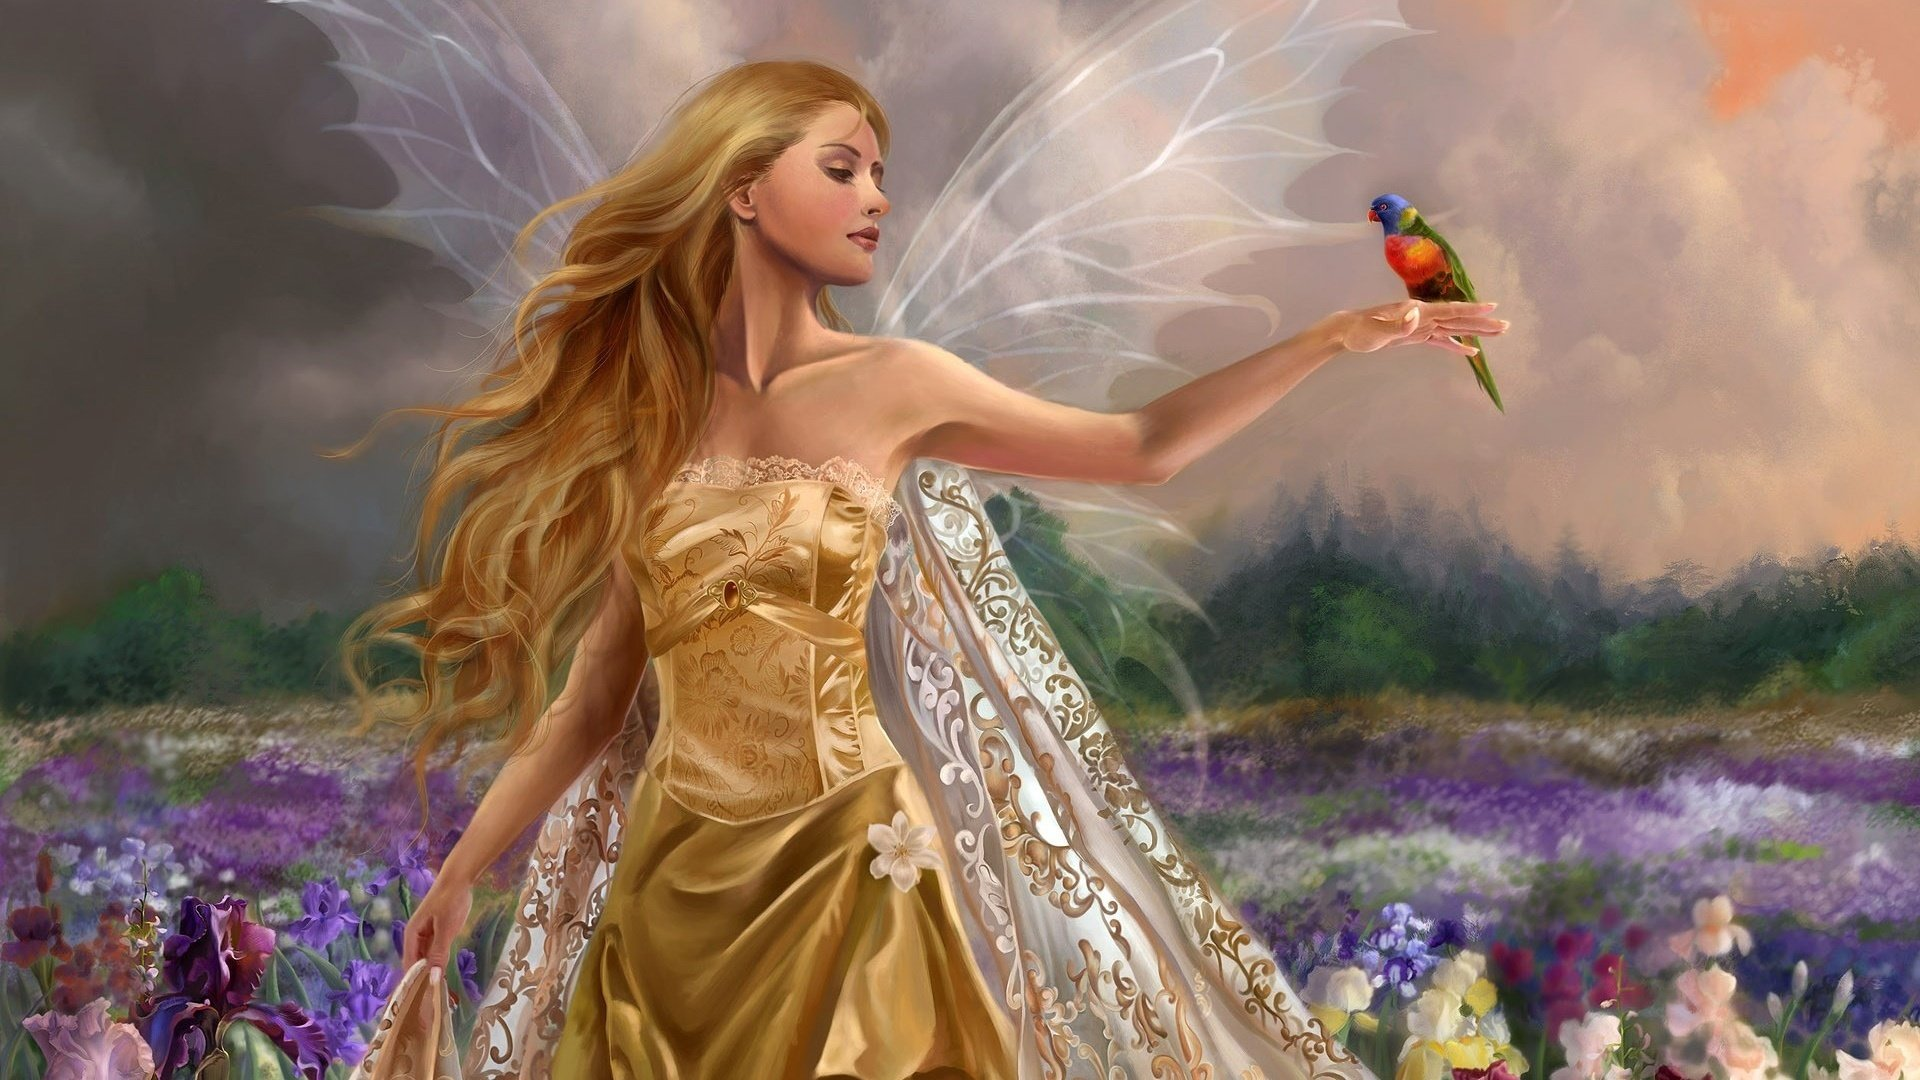 Animated-Fairy-wallpaper-wpc5802132